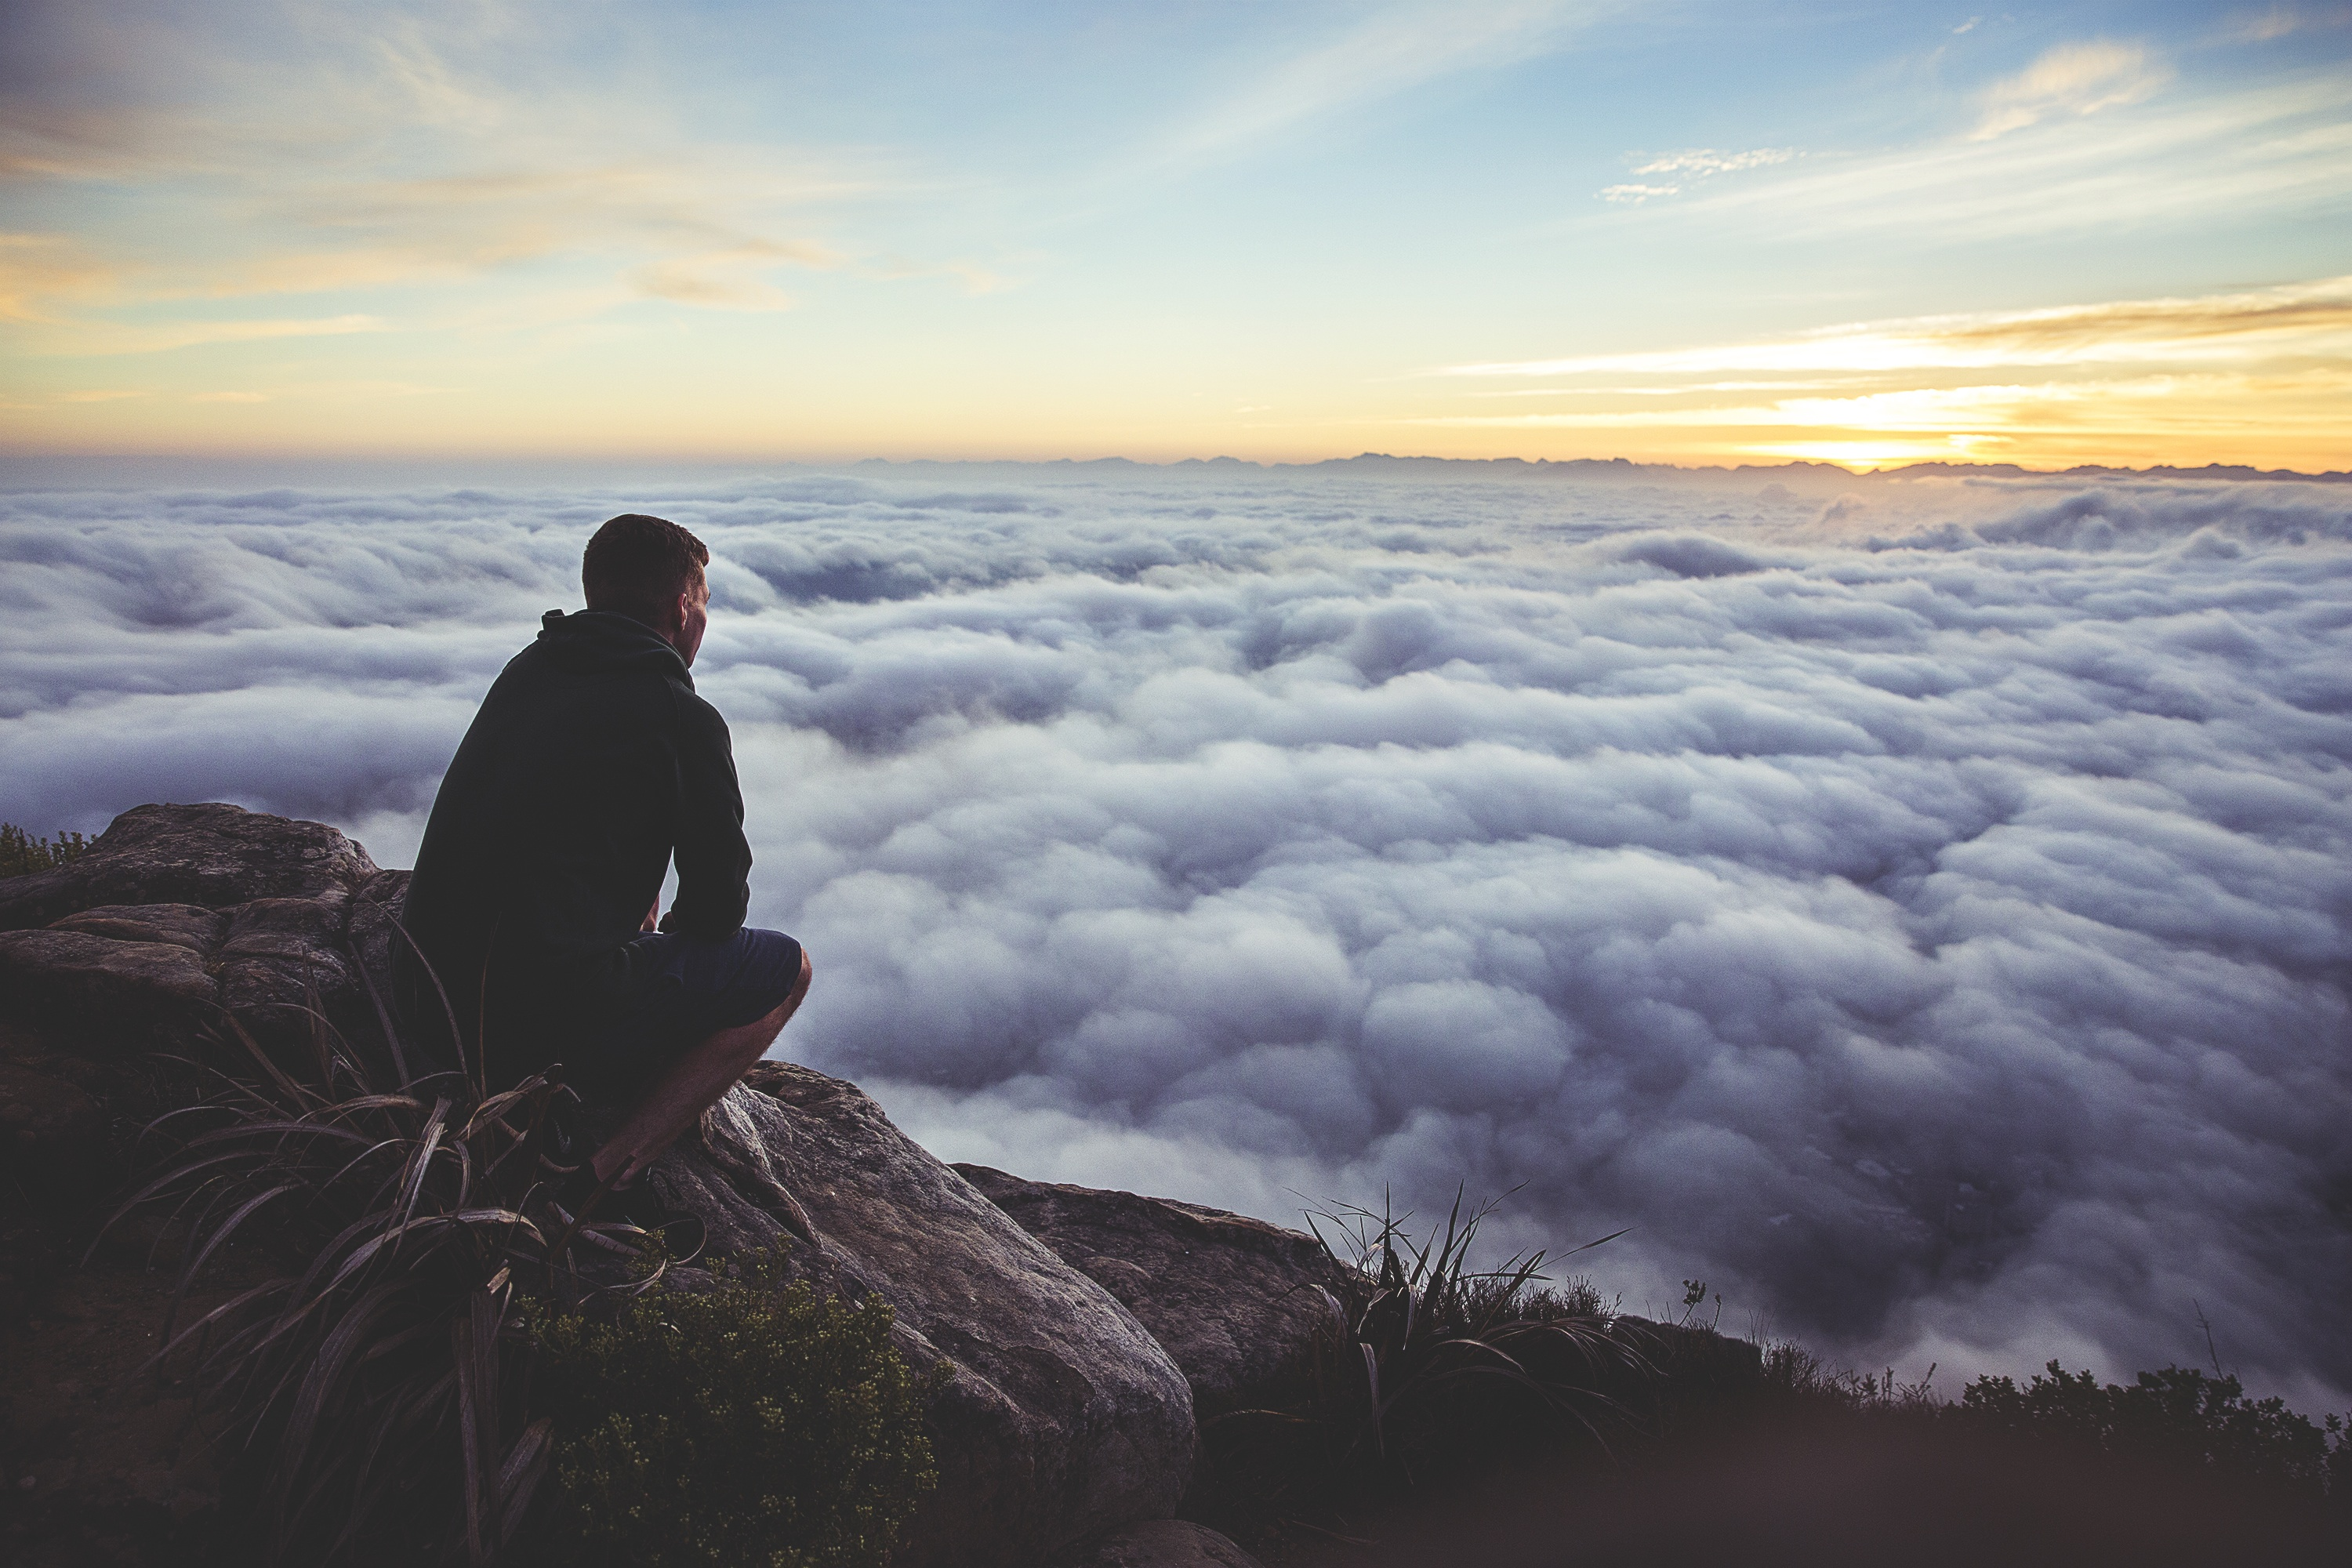 man-overlooking-clouds-from-unsplash-by-joshua-earle